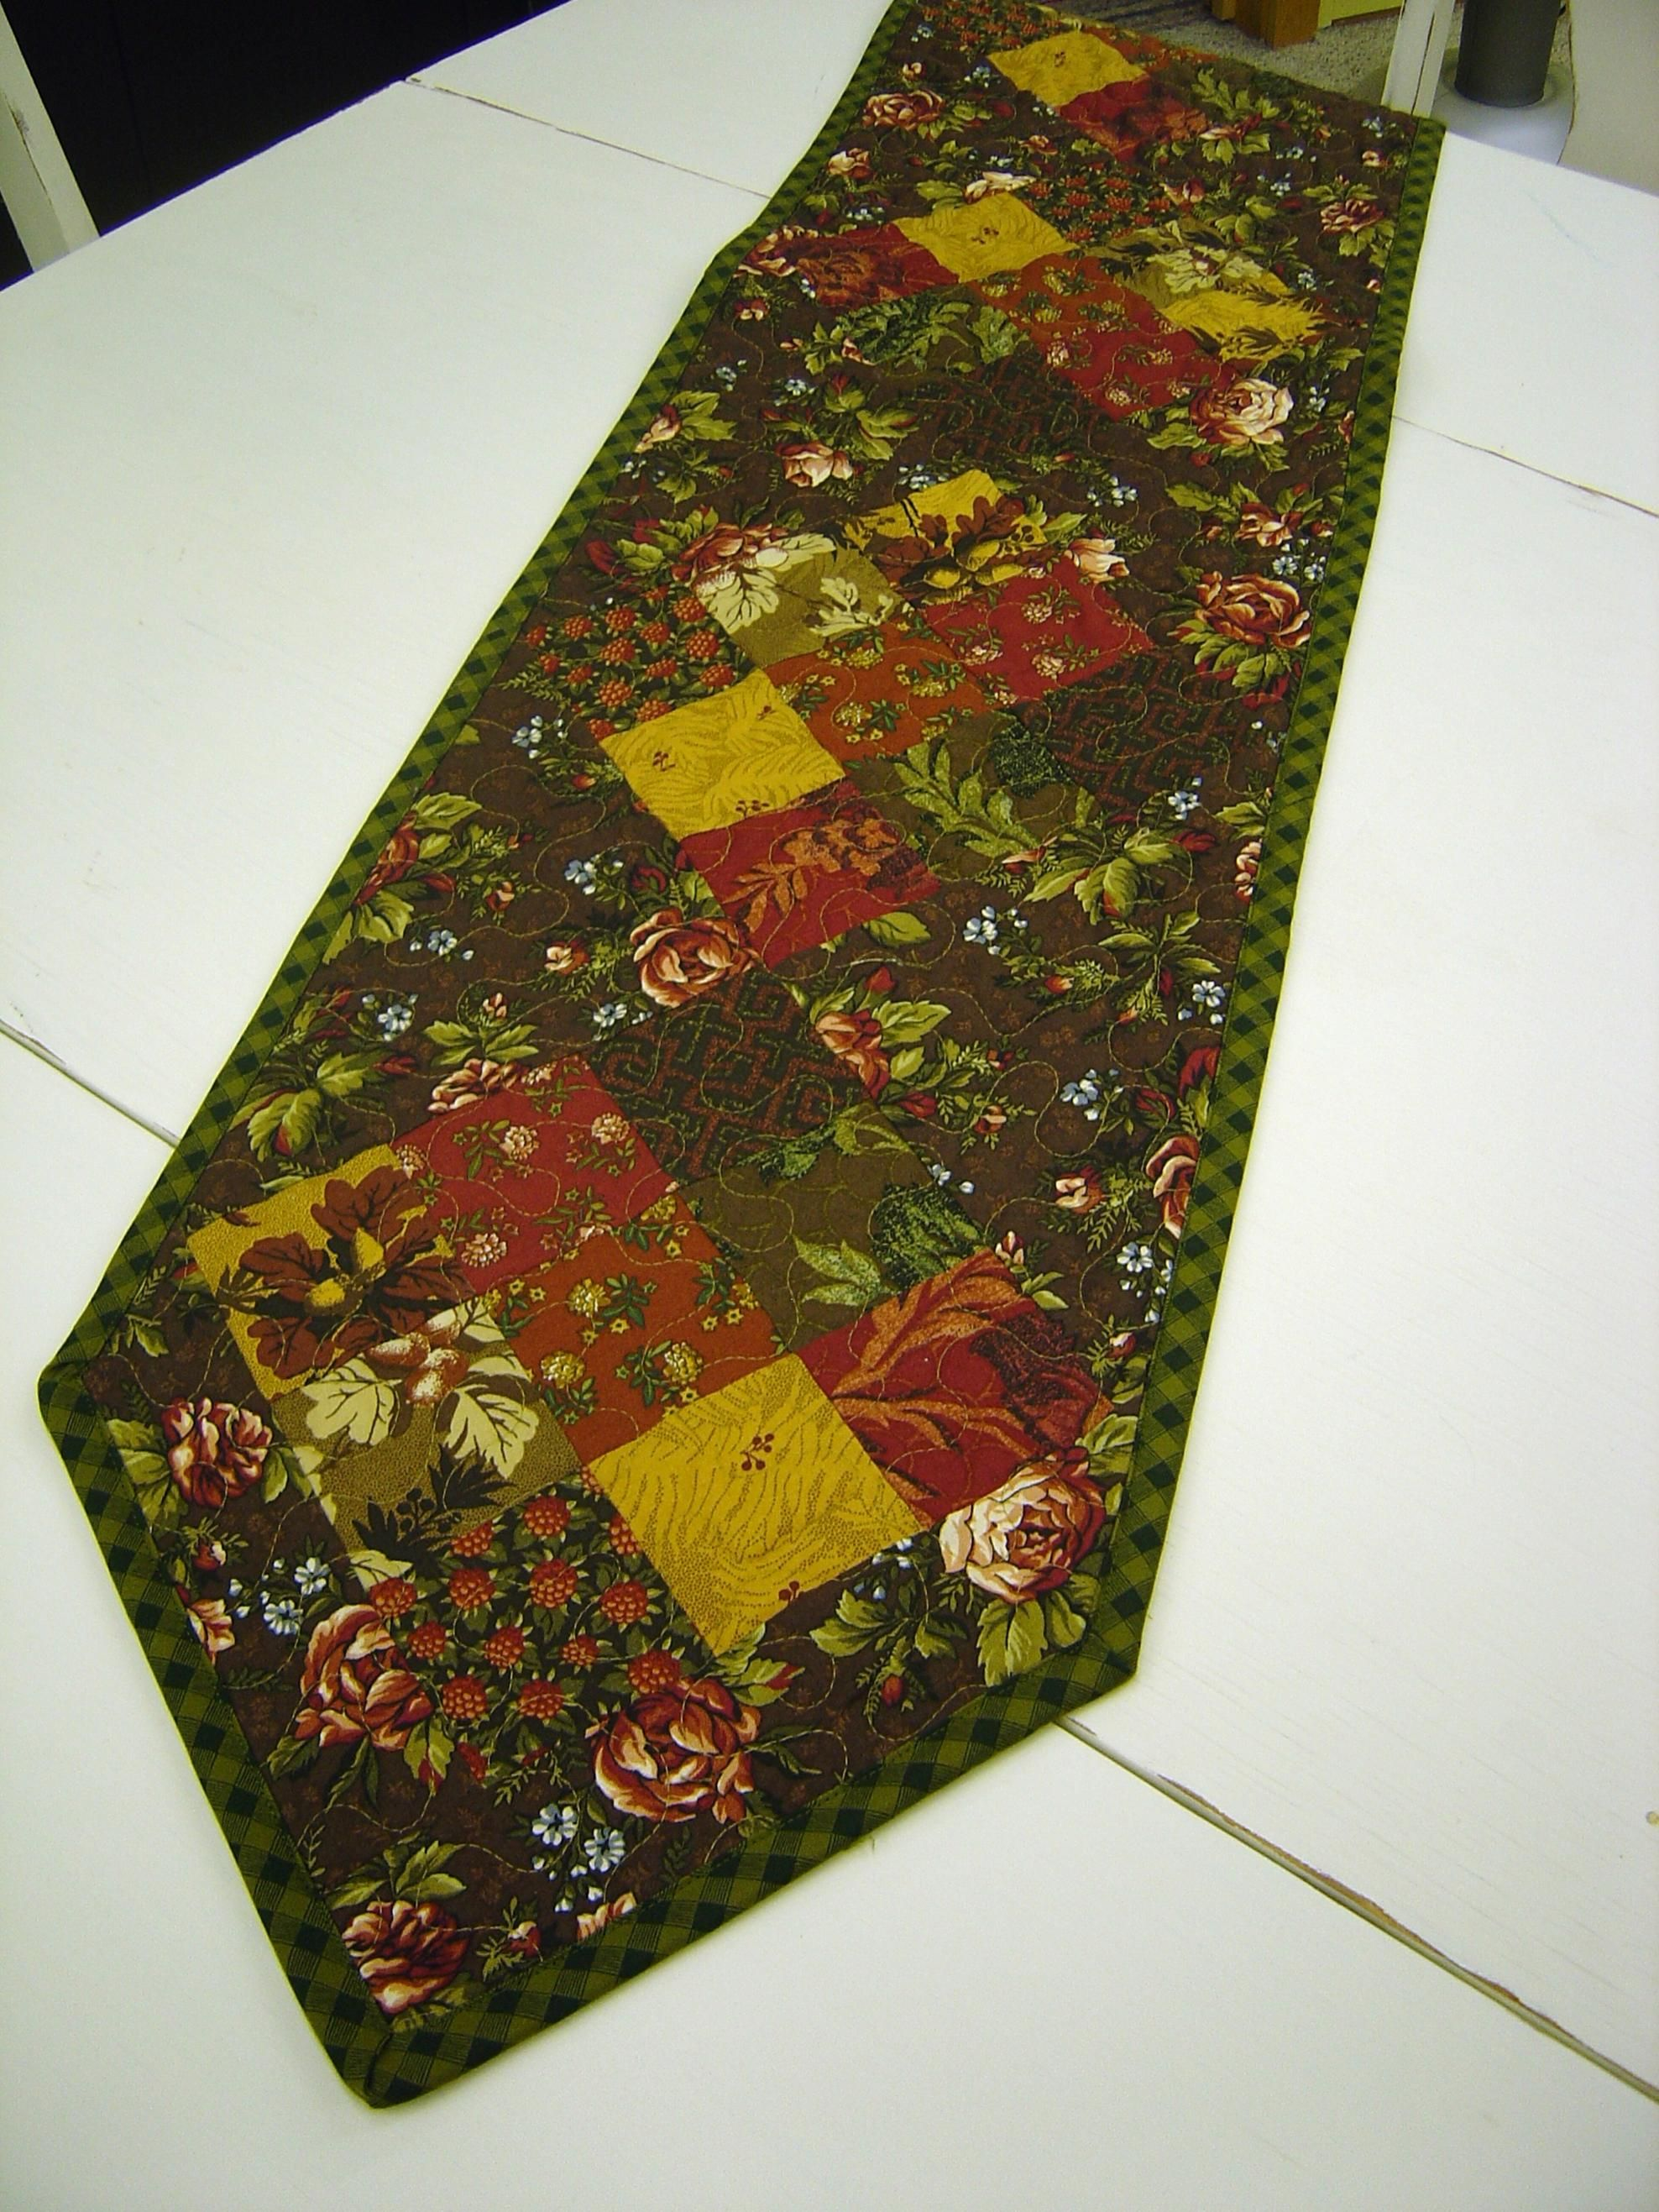 Simple Table Runner Patterns | Pdf, Patterns and Sewing projects : table runner quilt patterns - Adamdwight.com